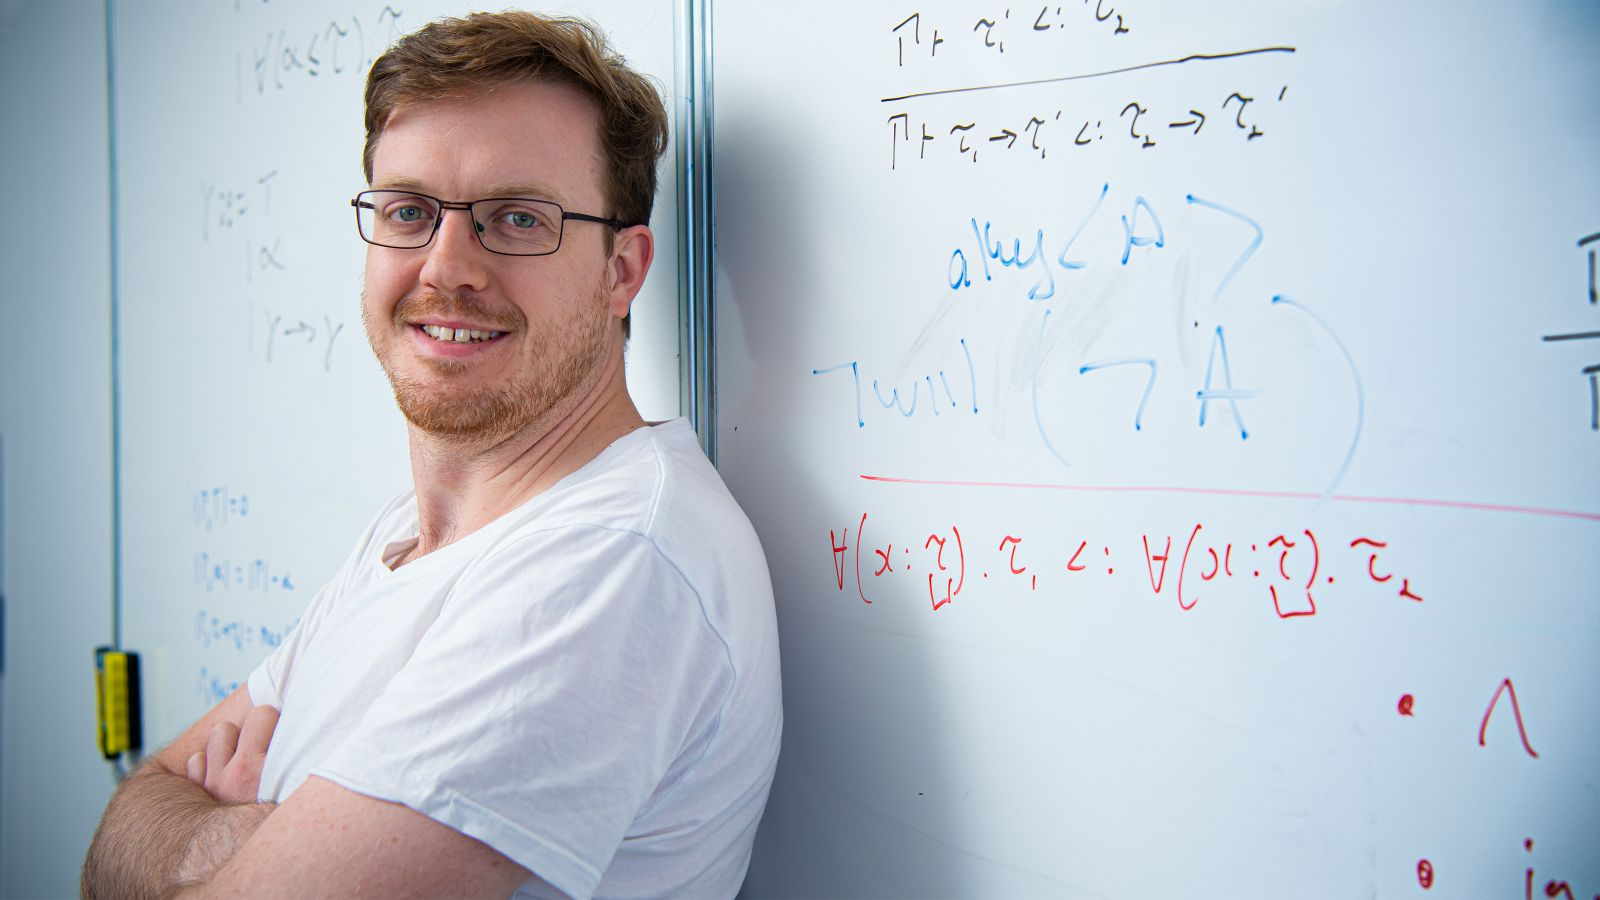 Smiling man stands in front of a whiteboard showing mathematical equations